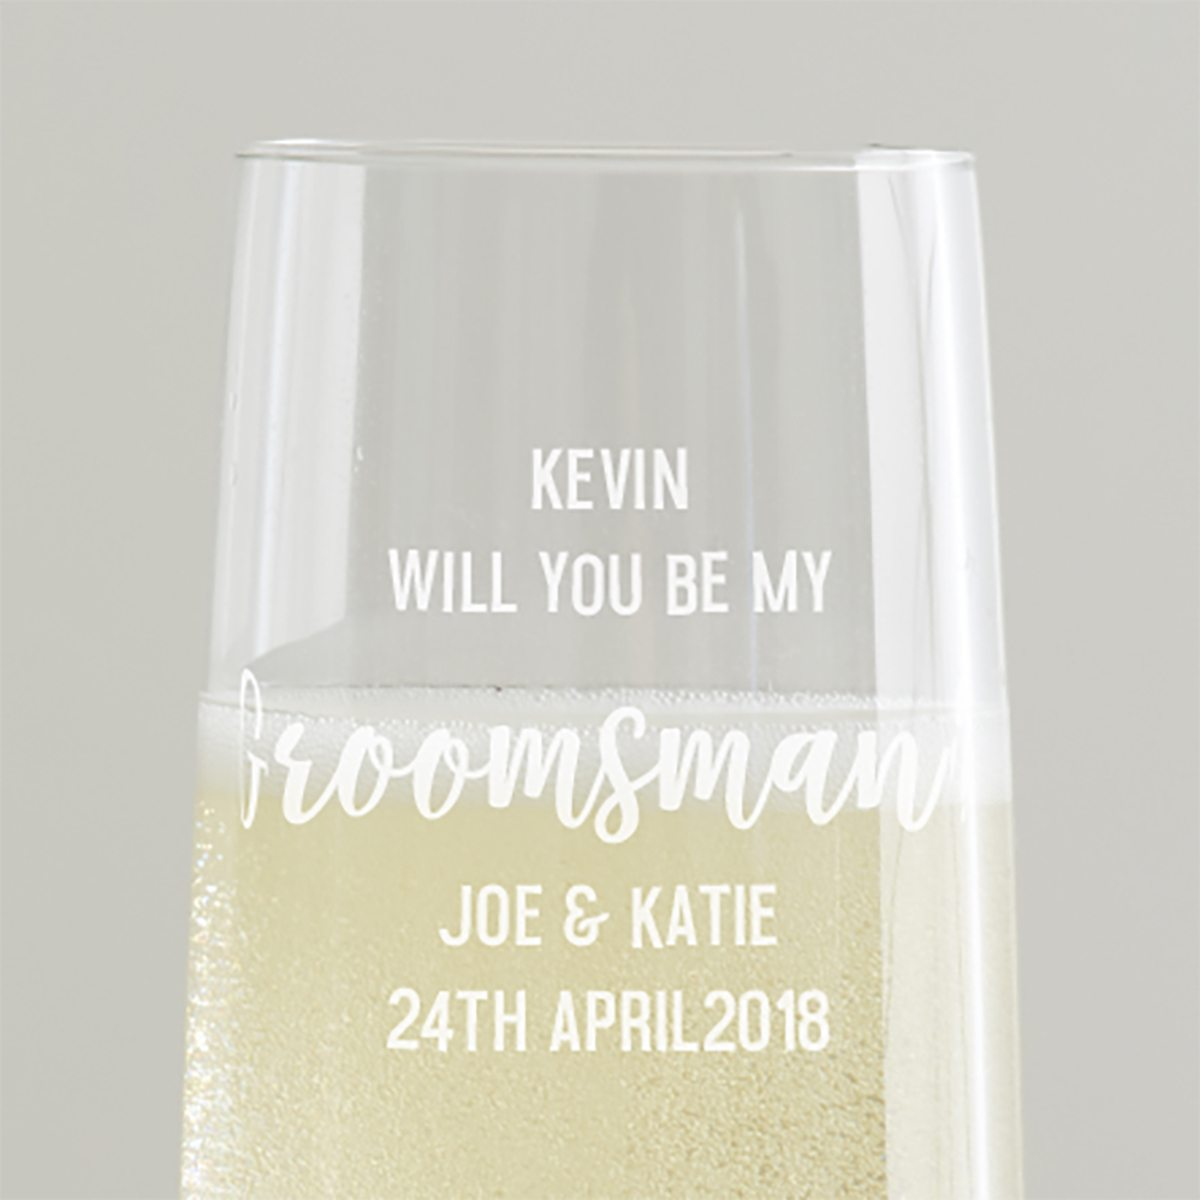 Personalised 'Will You Be My Groomsman' Champagne Flute